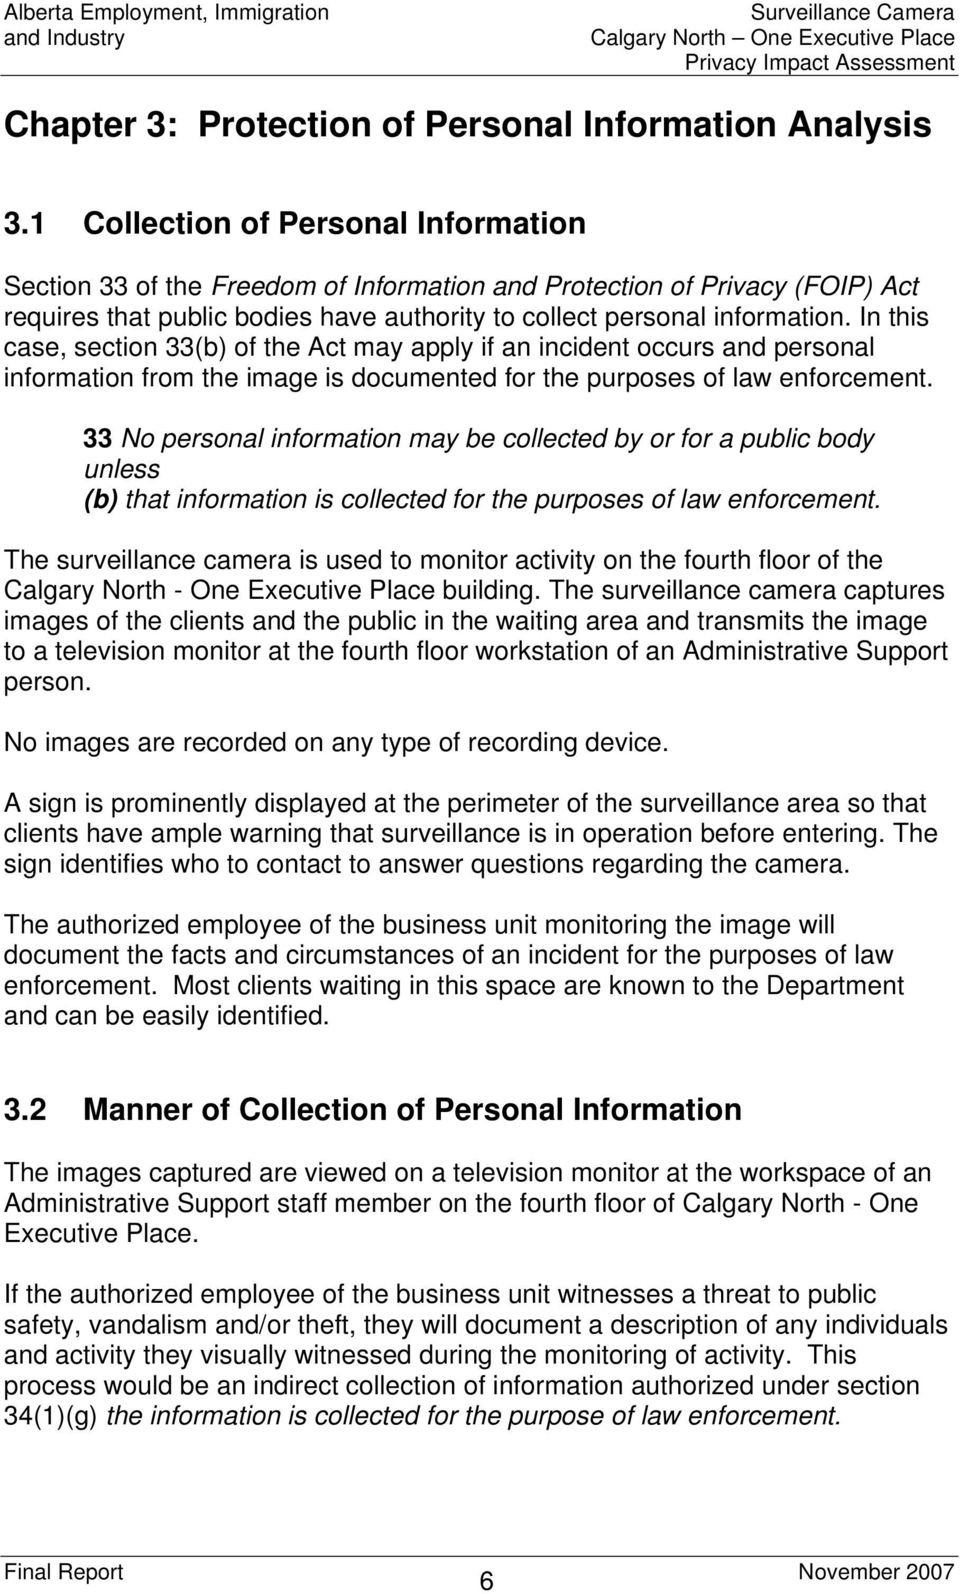 In this case, section 33(b) of the Act may apply if an incident occurs and personal information from the image is documented for the purposes of law enforcement.